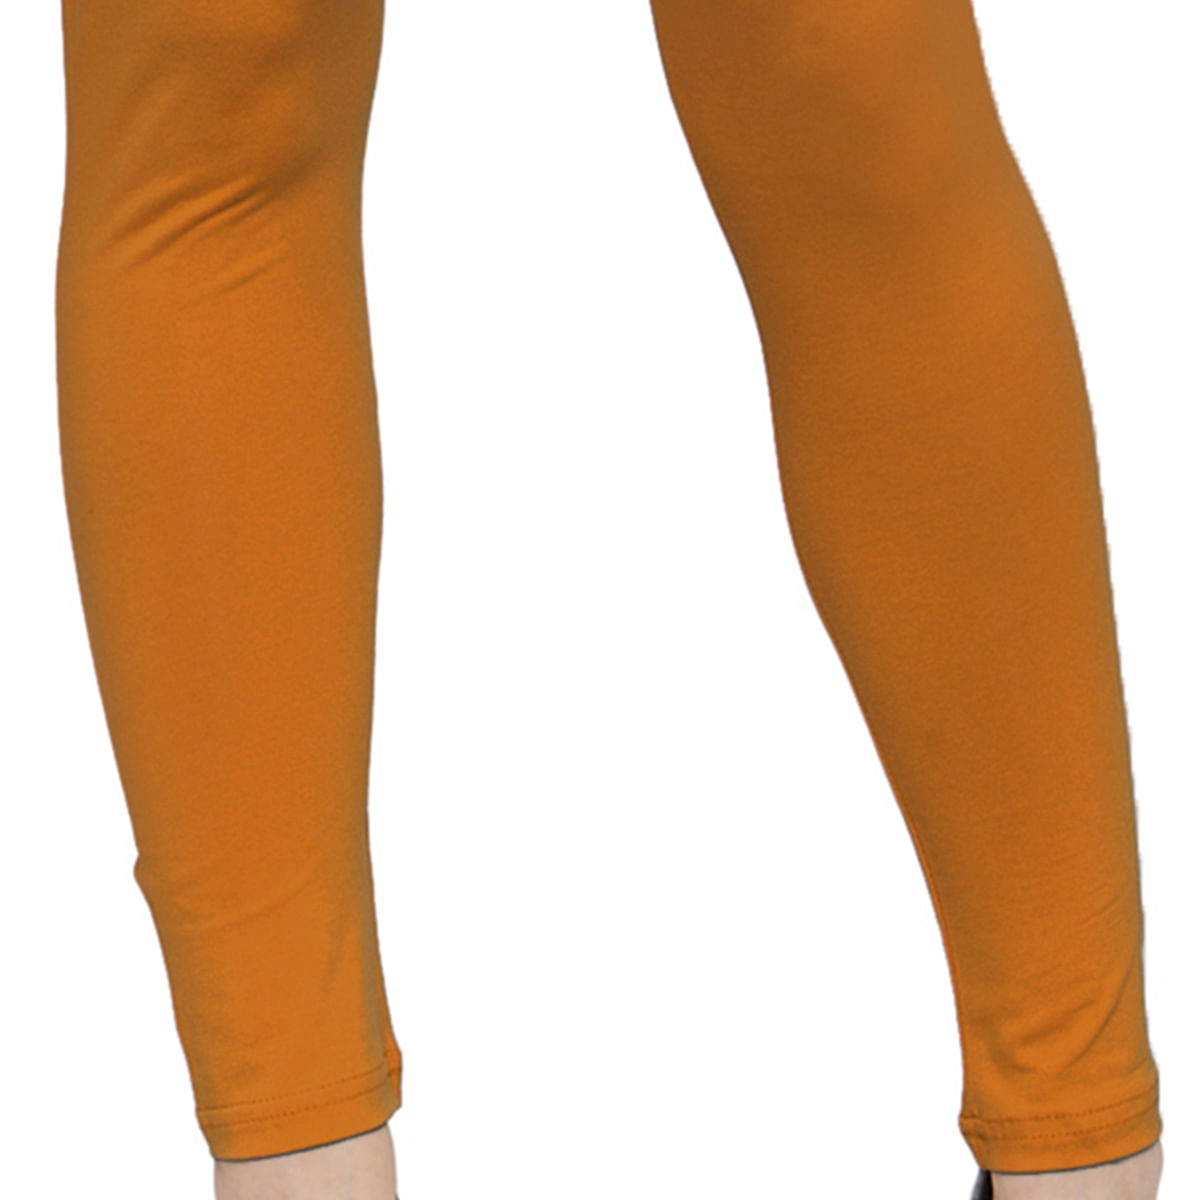 Preferable Rust Orange Colored Casual Wear Ankle Length Leggings